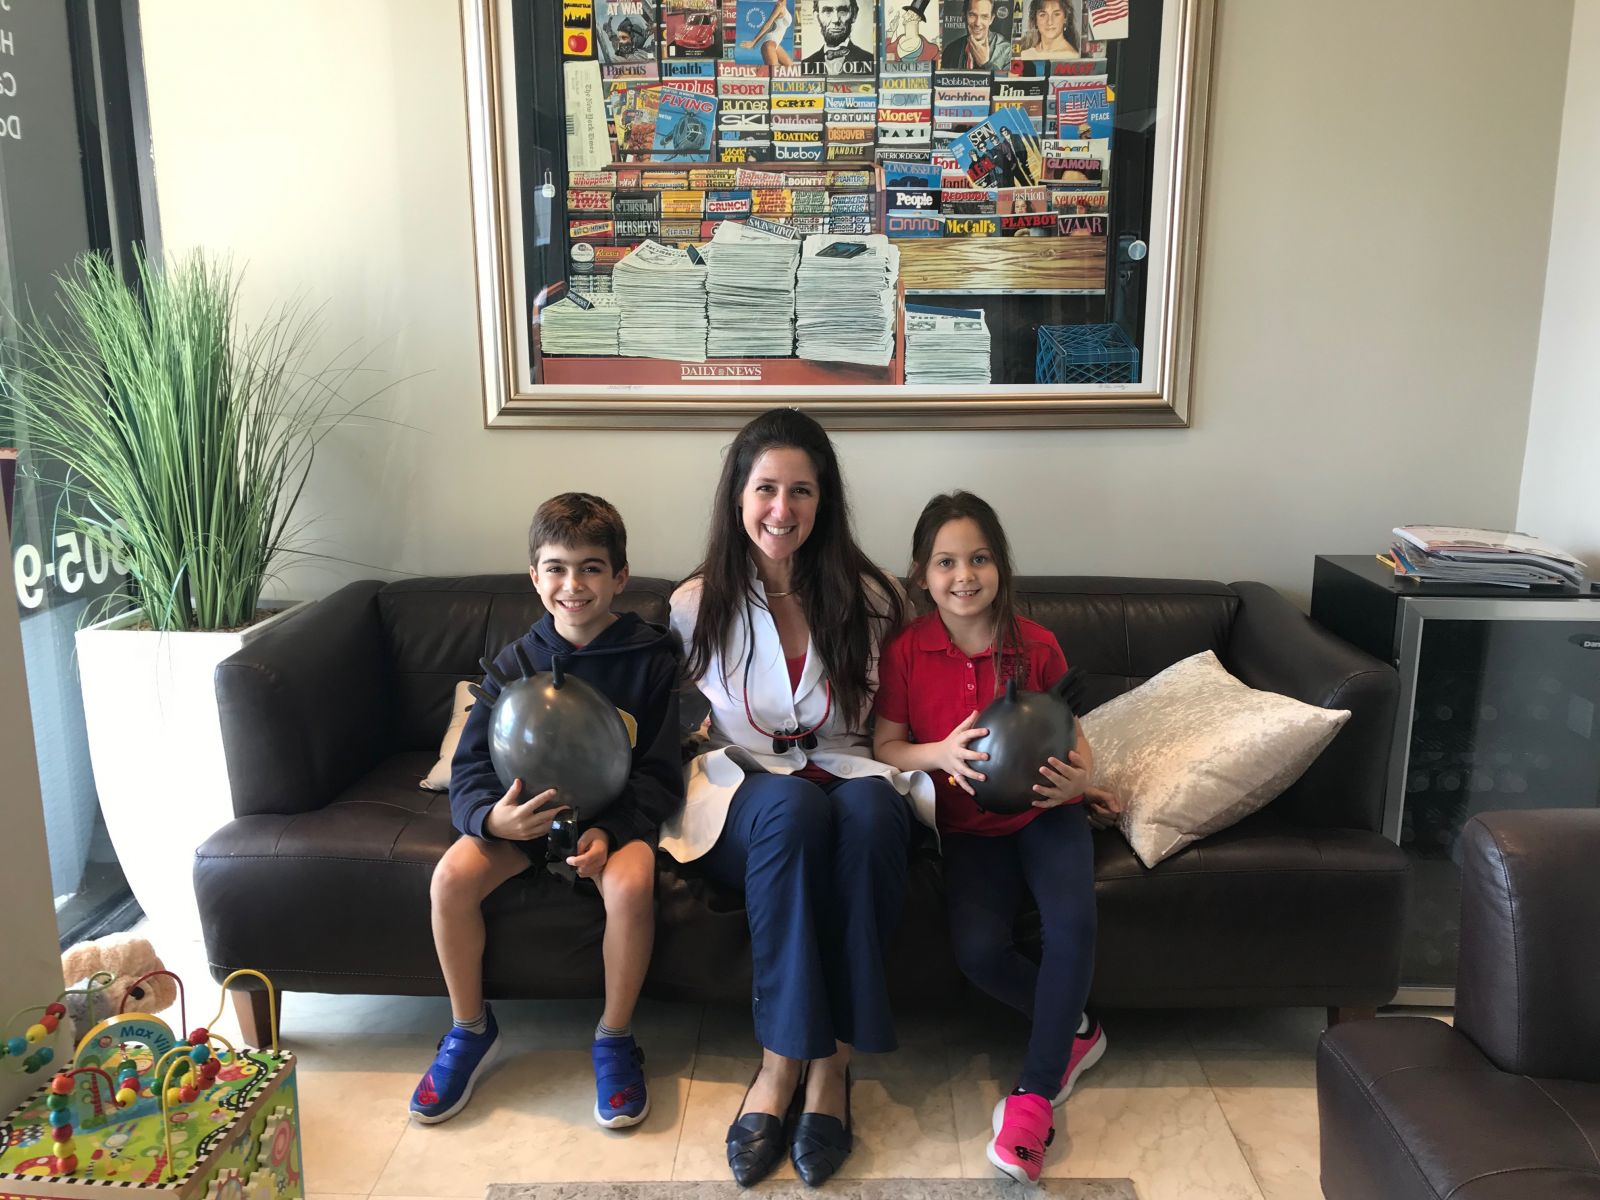 Local kids friendly dentist in Aventura and Miami, Dr. Jessica Cismas is an experienced dentist treating and teaching children about oral hygiene. Additionally, Aventura Dental Group currently offers a very limited membership plan for the entire family.  This membership is geared towards families with children and it can save you a lot of money versus a traditional dental insurance plan.